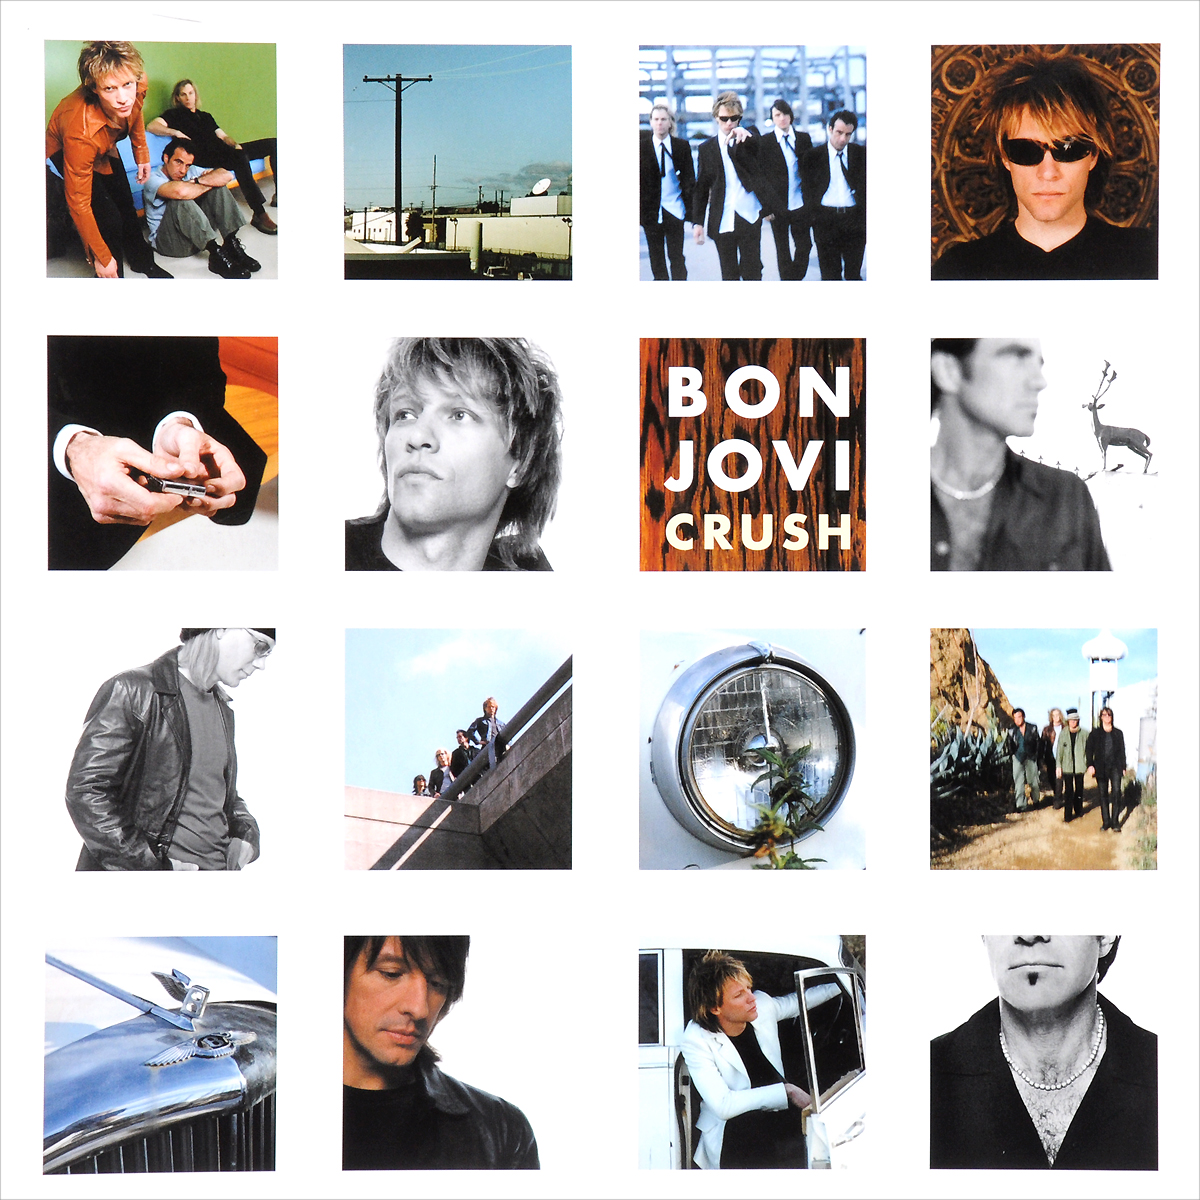 Bon Jovi Bon Jovi. Crush (2 LP) bon jovi bon jovi what about now 2 lp 180 gr